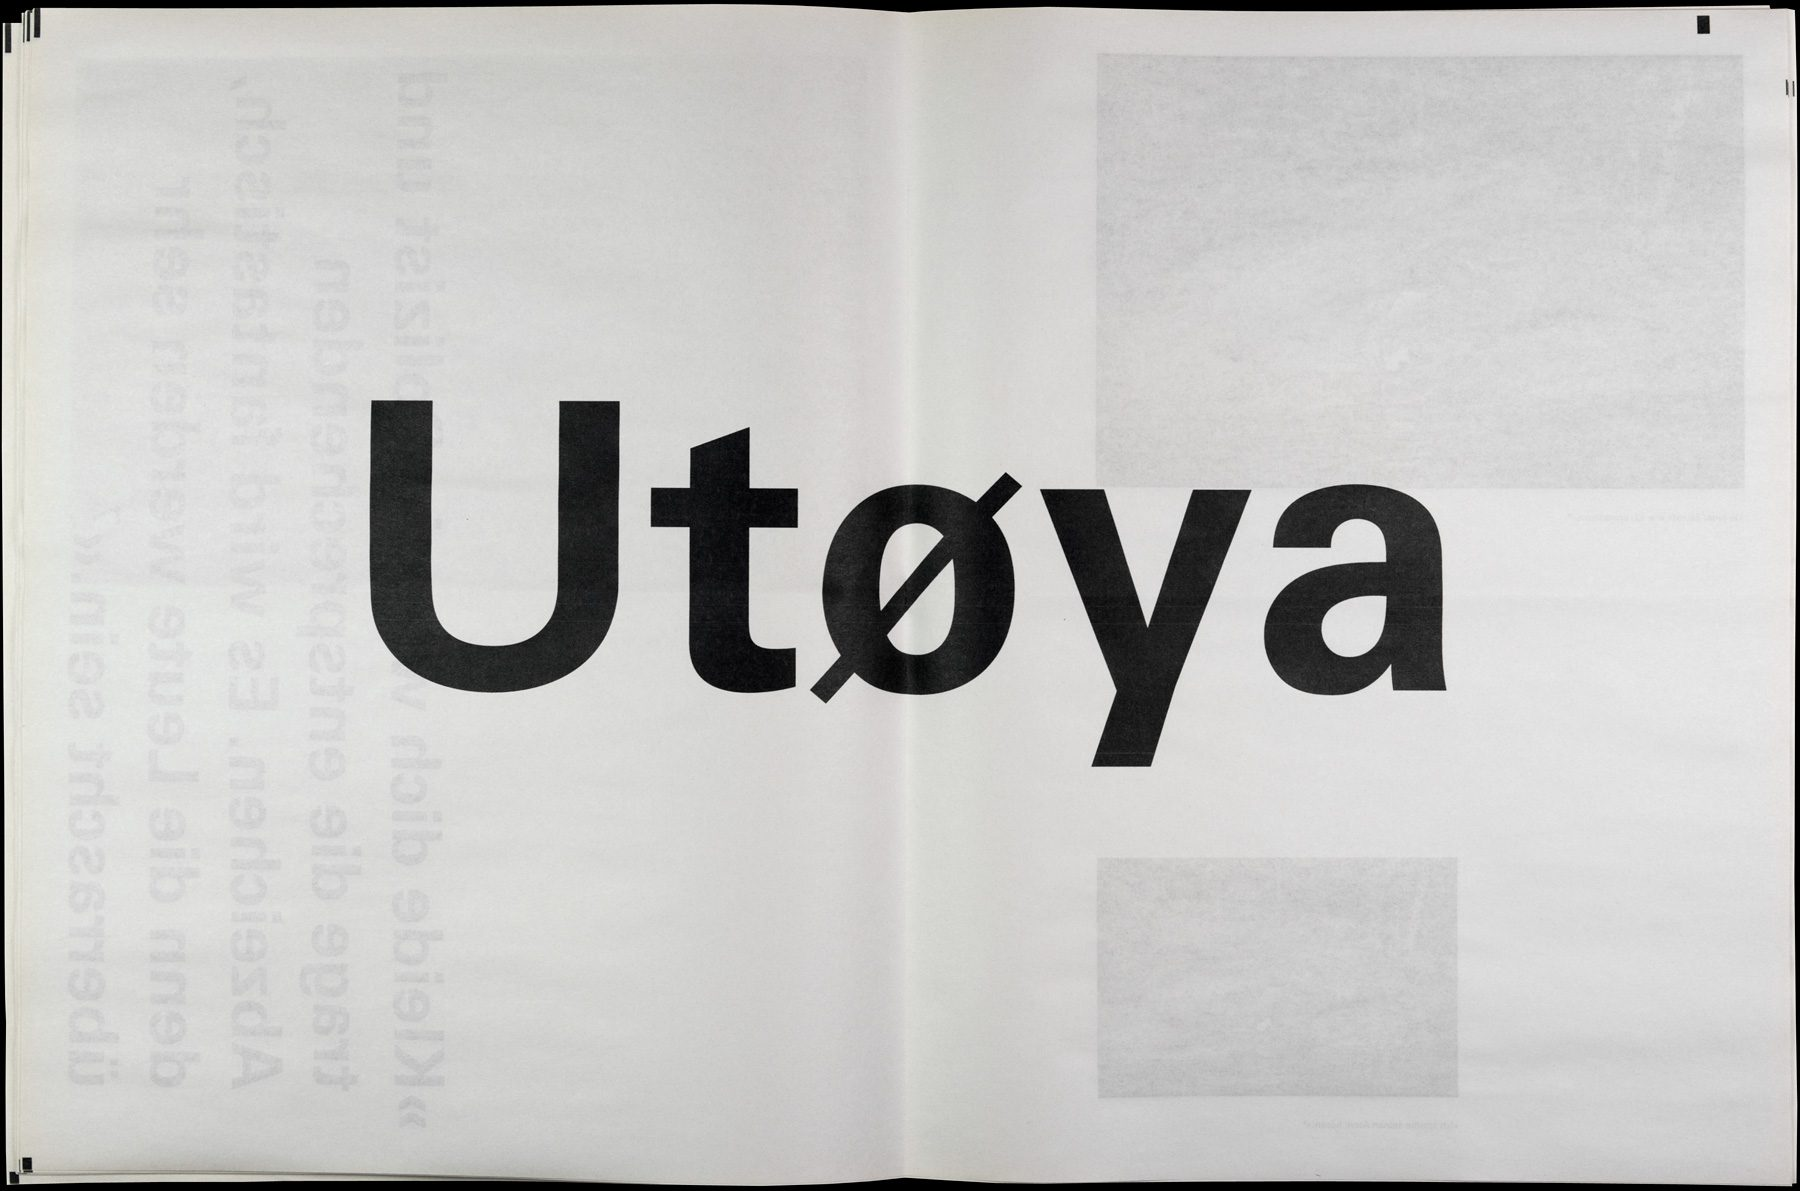 Utøya, 77, research project, University of Applied Sciences Düsseldorf, David Fischbach